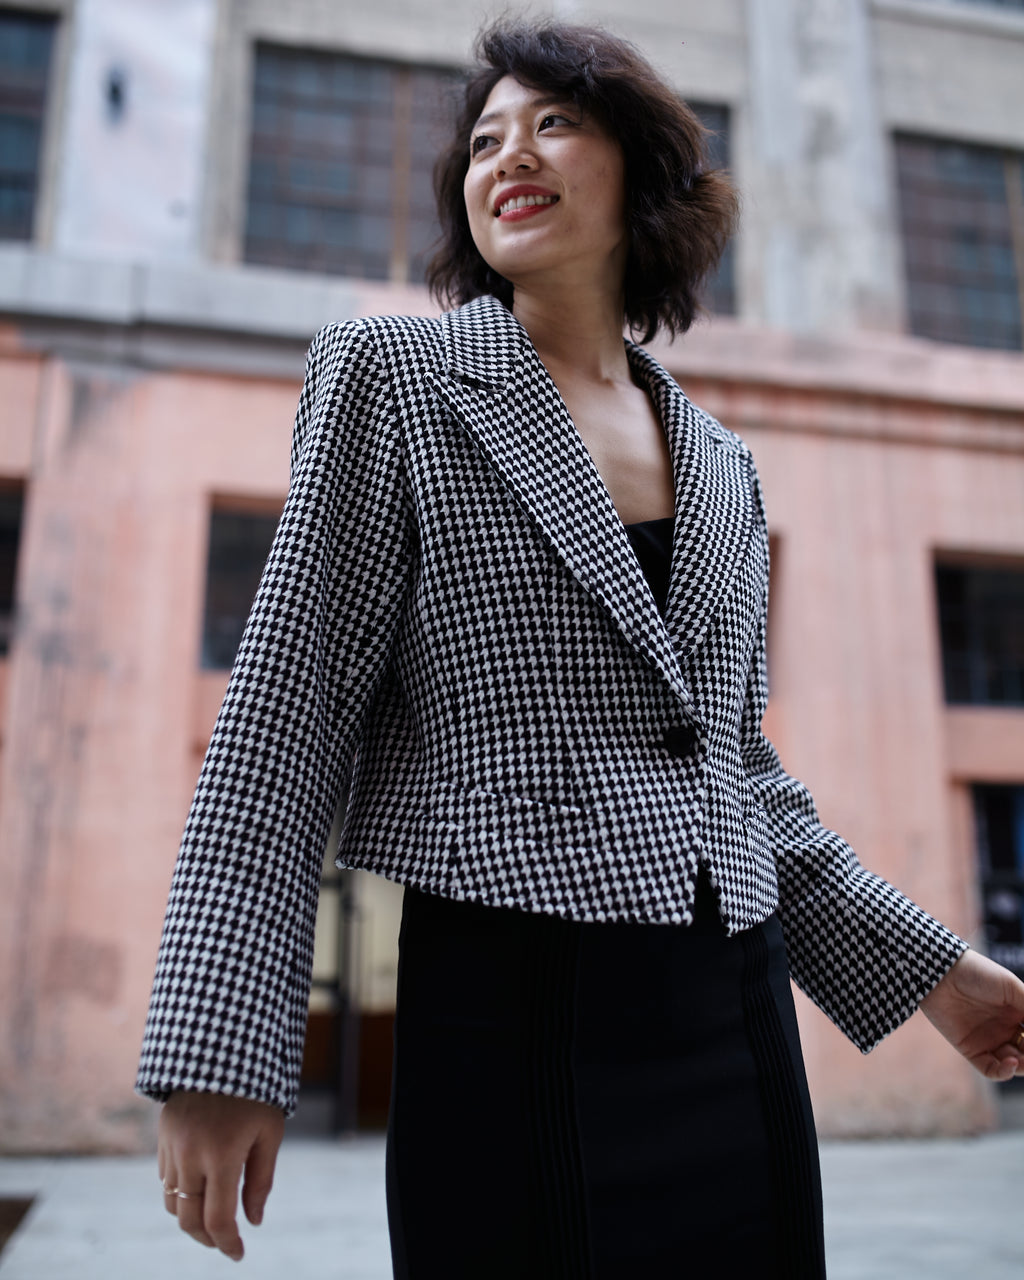 Vintage Yves Saint Laurent Textured Houndstooth Jacket